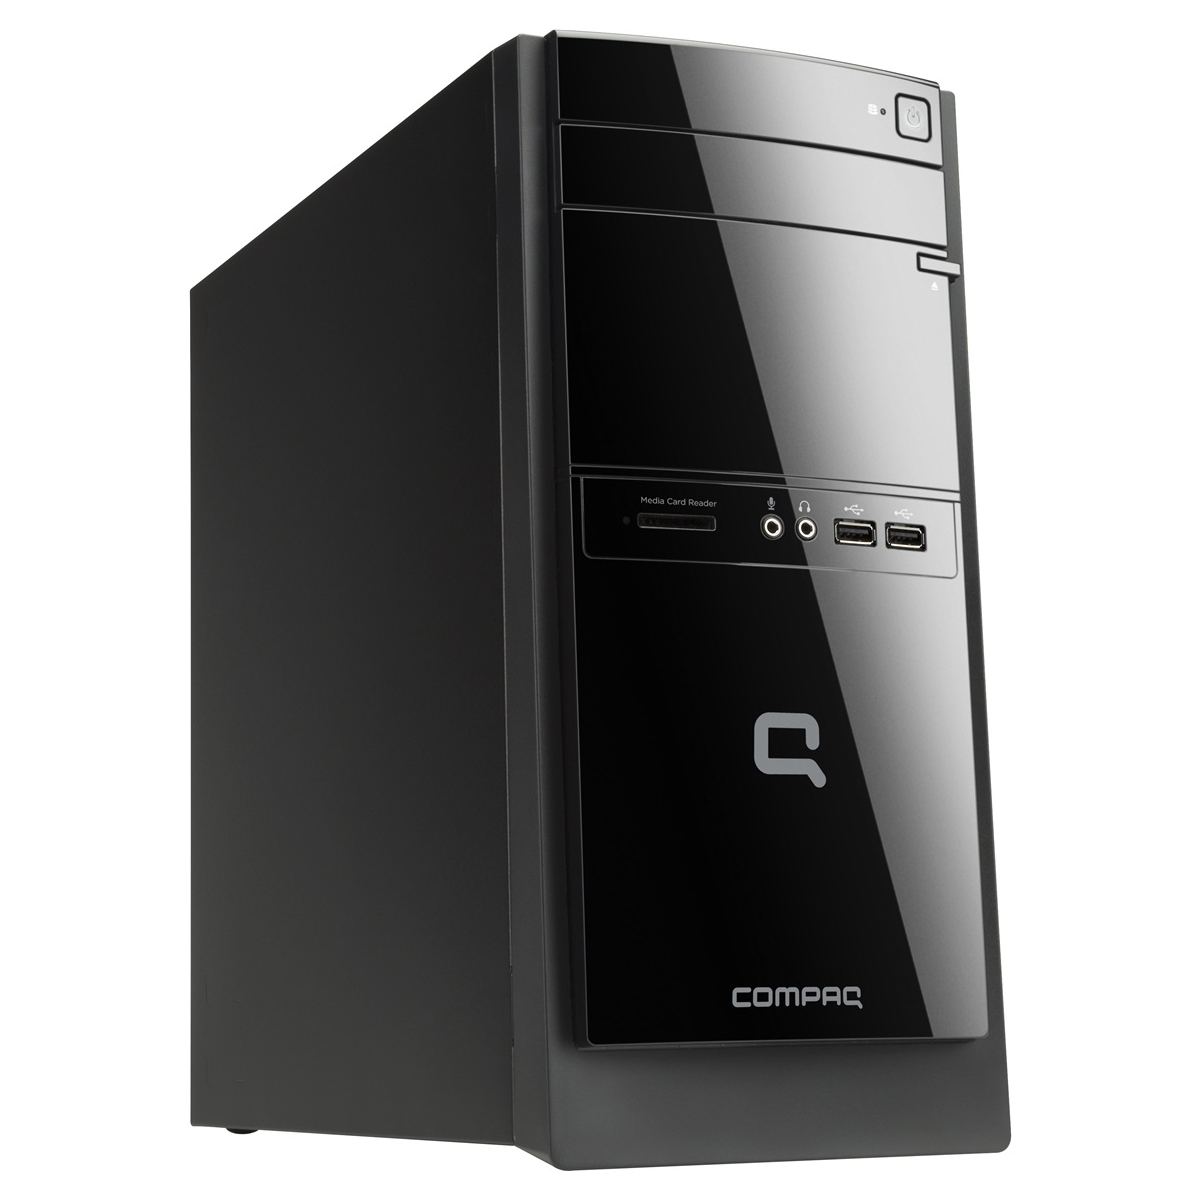 Hp compaq 100 501nf pc de bureau hp sur ldlc - Pc bureau multimedia ...